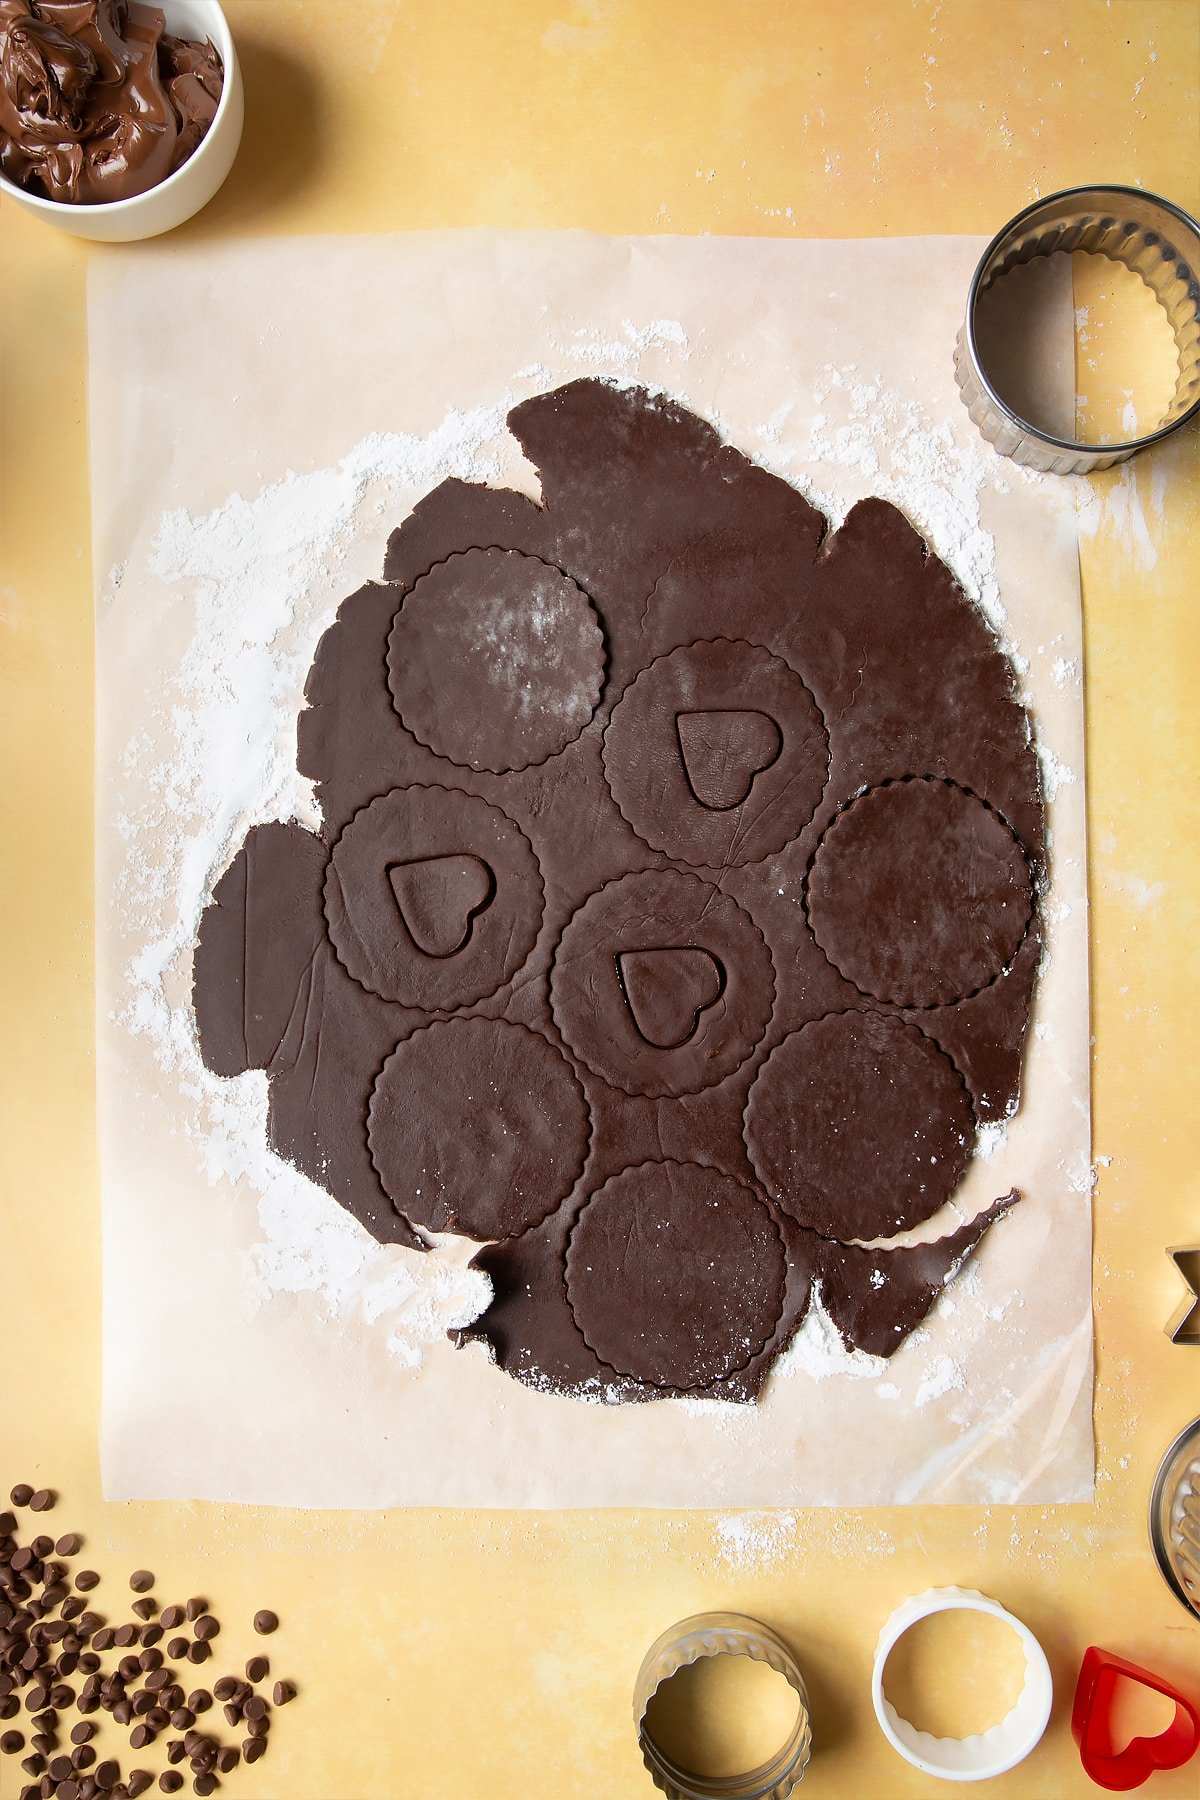 Chocolate shortbread dough rolled out on baking paper. Cookie shapes have been cut out, including heart shapes in the centre of some of the discs.